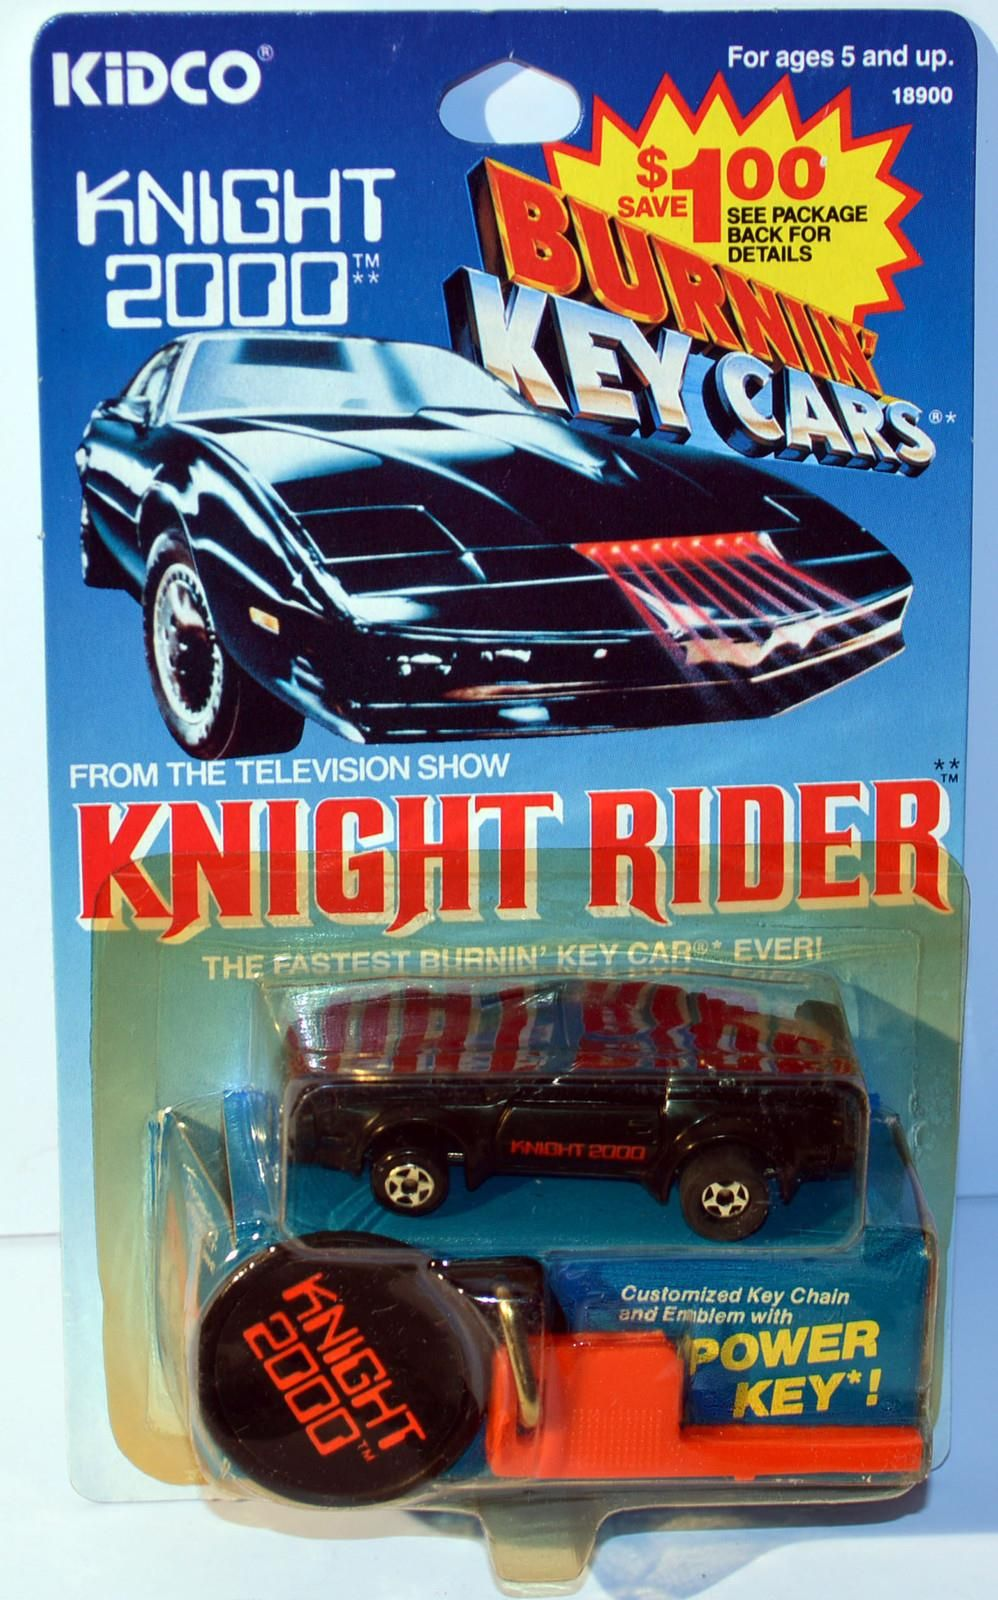 Knight Rider Knight  Burninu Key Car by Kidco  Awsome us